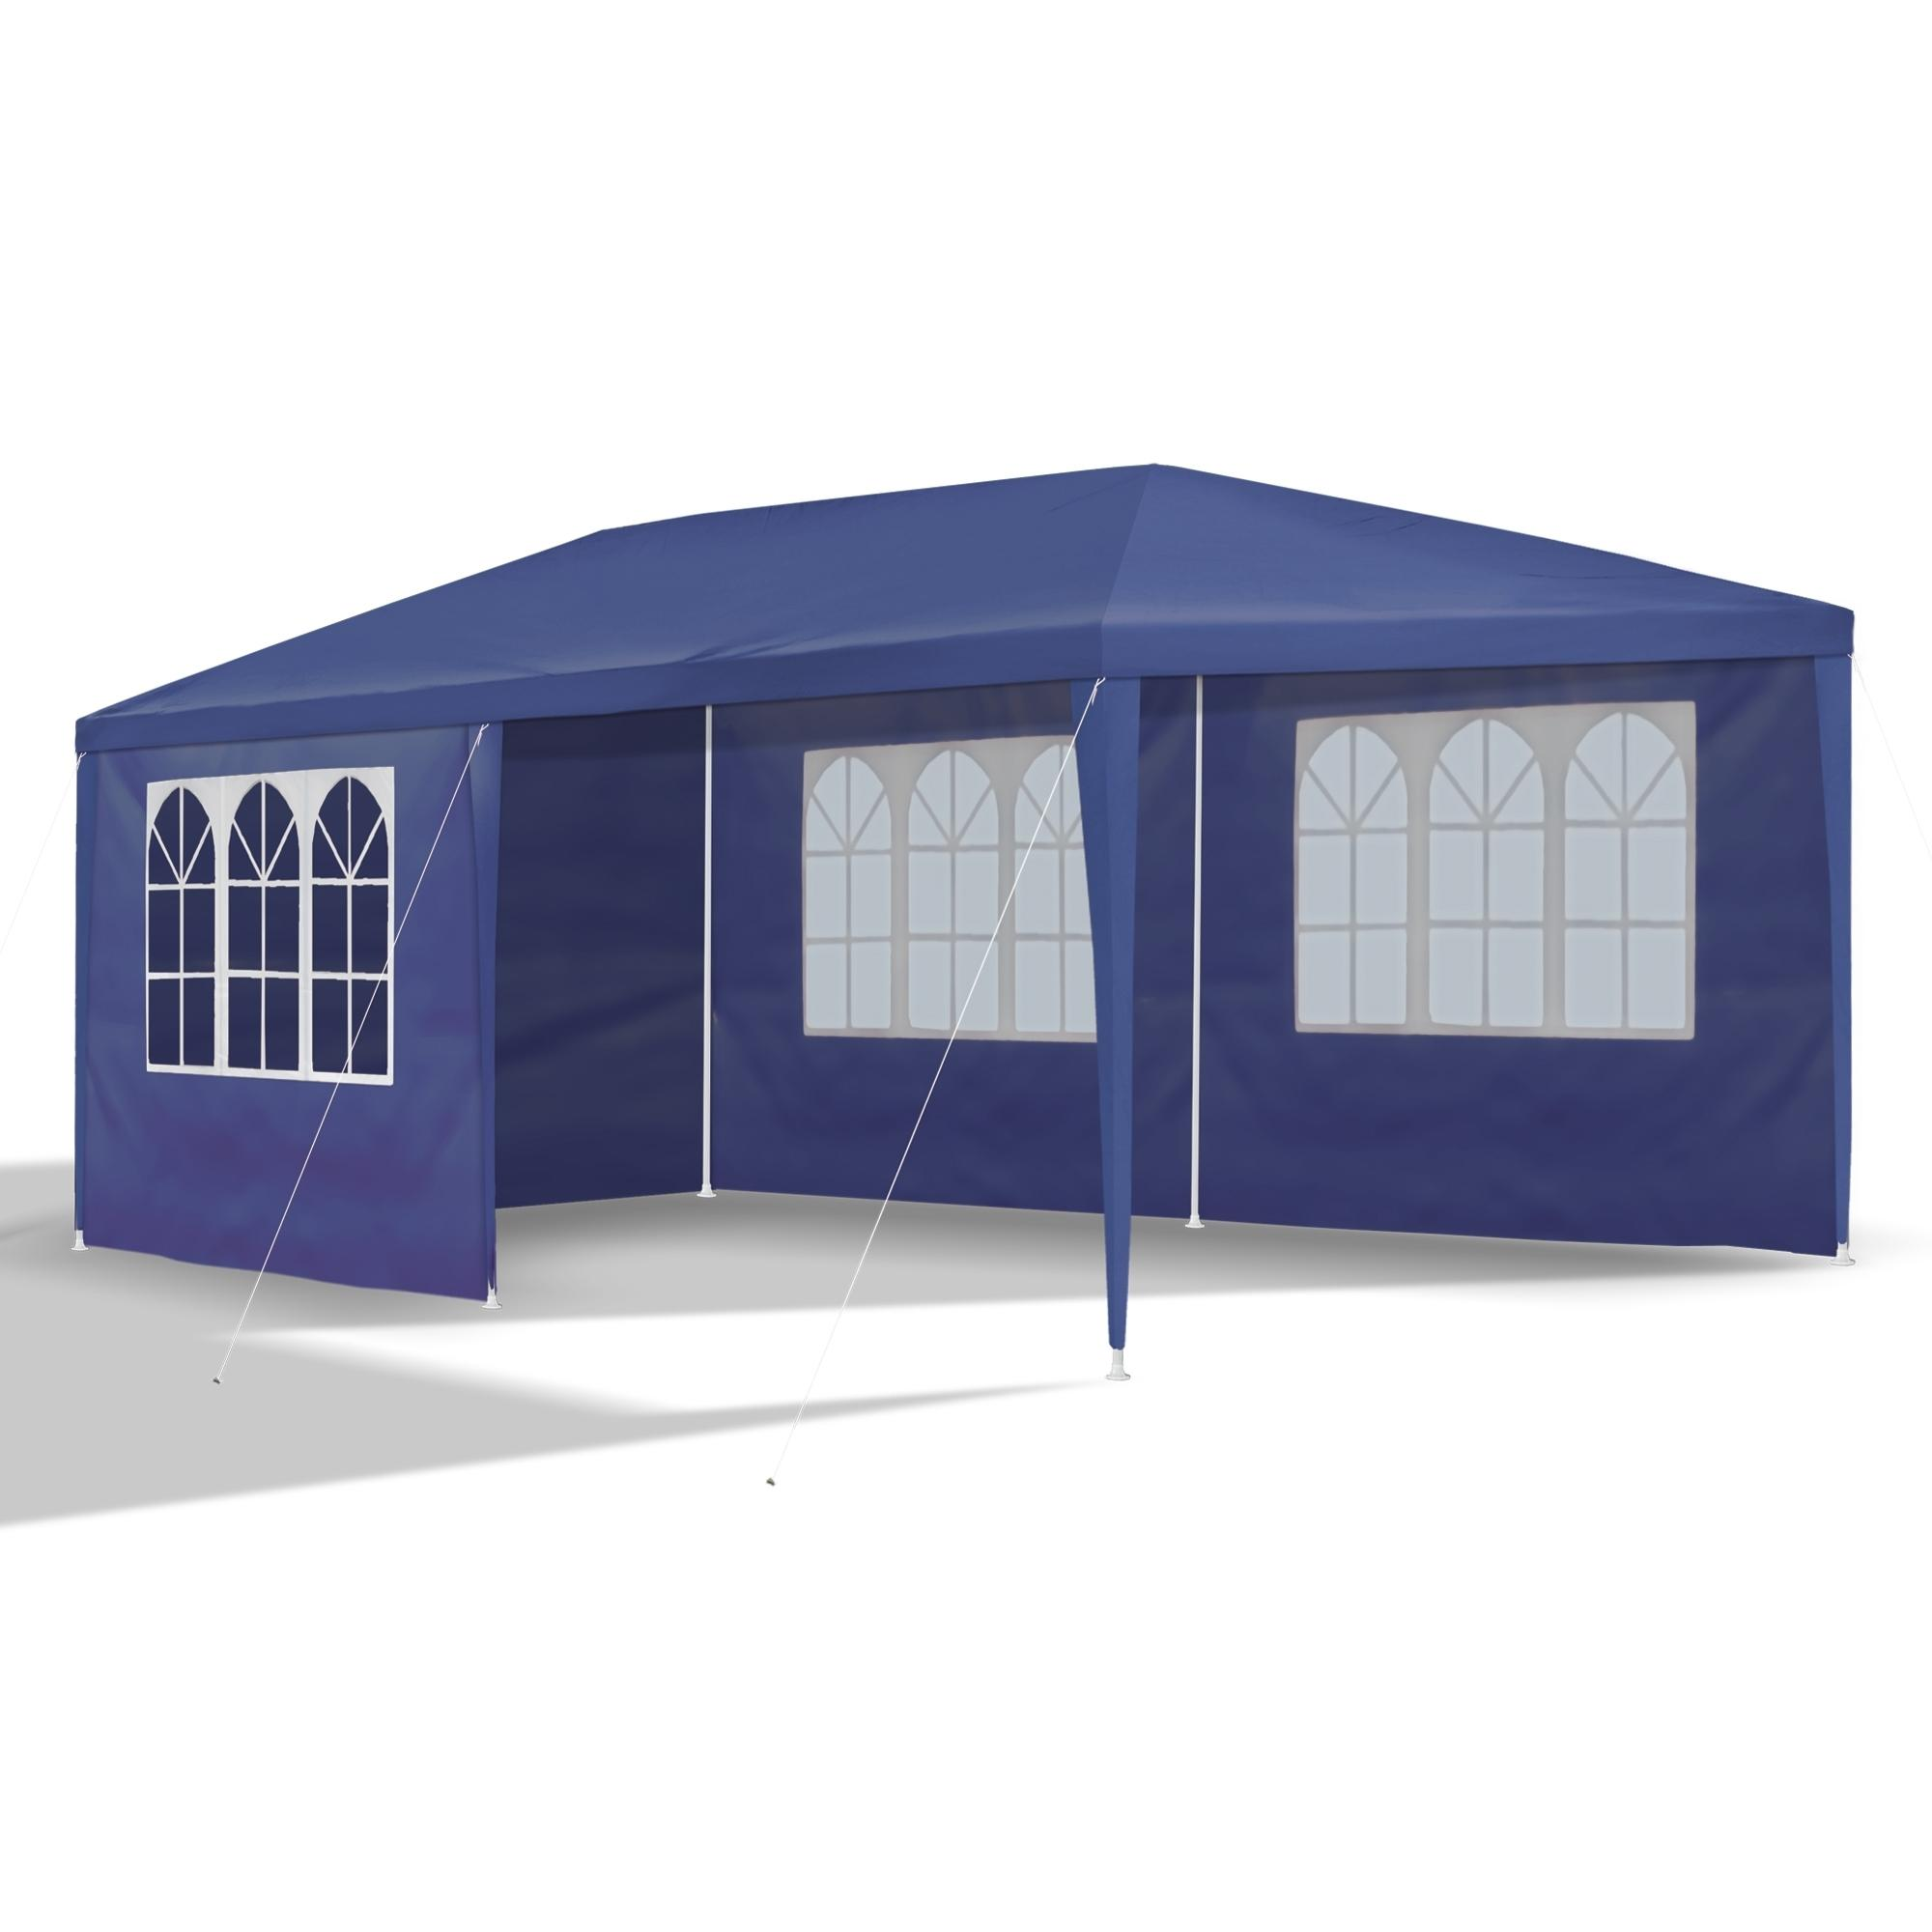 gartenpavillon 3 x 6 m blau pavillon pavillion partyzelt festzelt gartenzelt mit 6. Black Bedroom Furniture Sets. Home Design Ideas